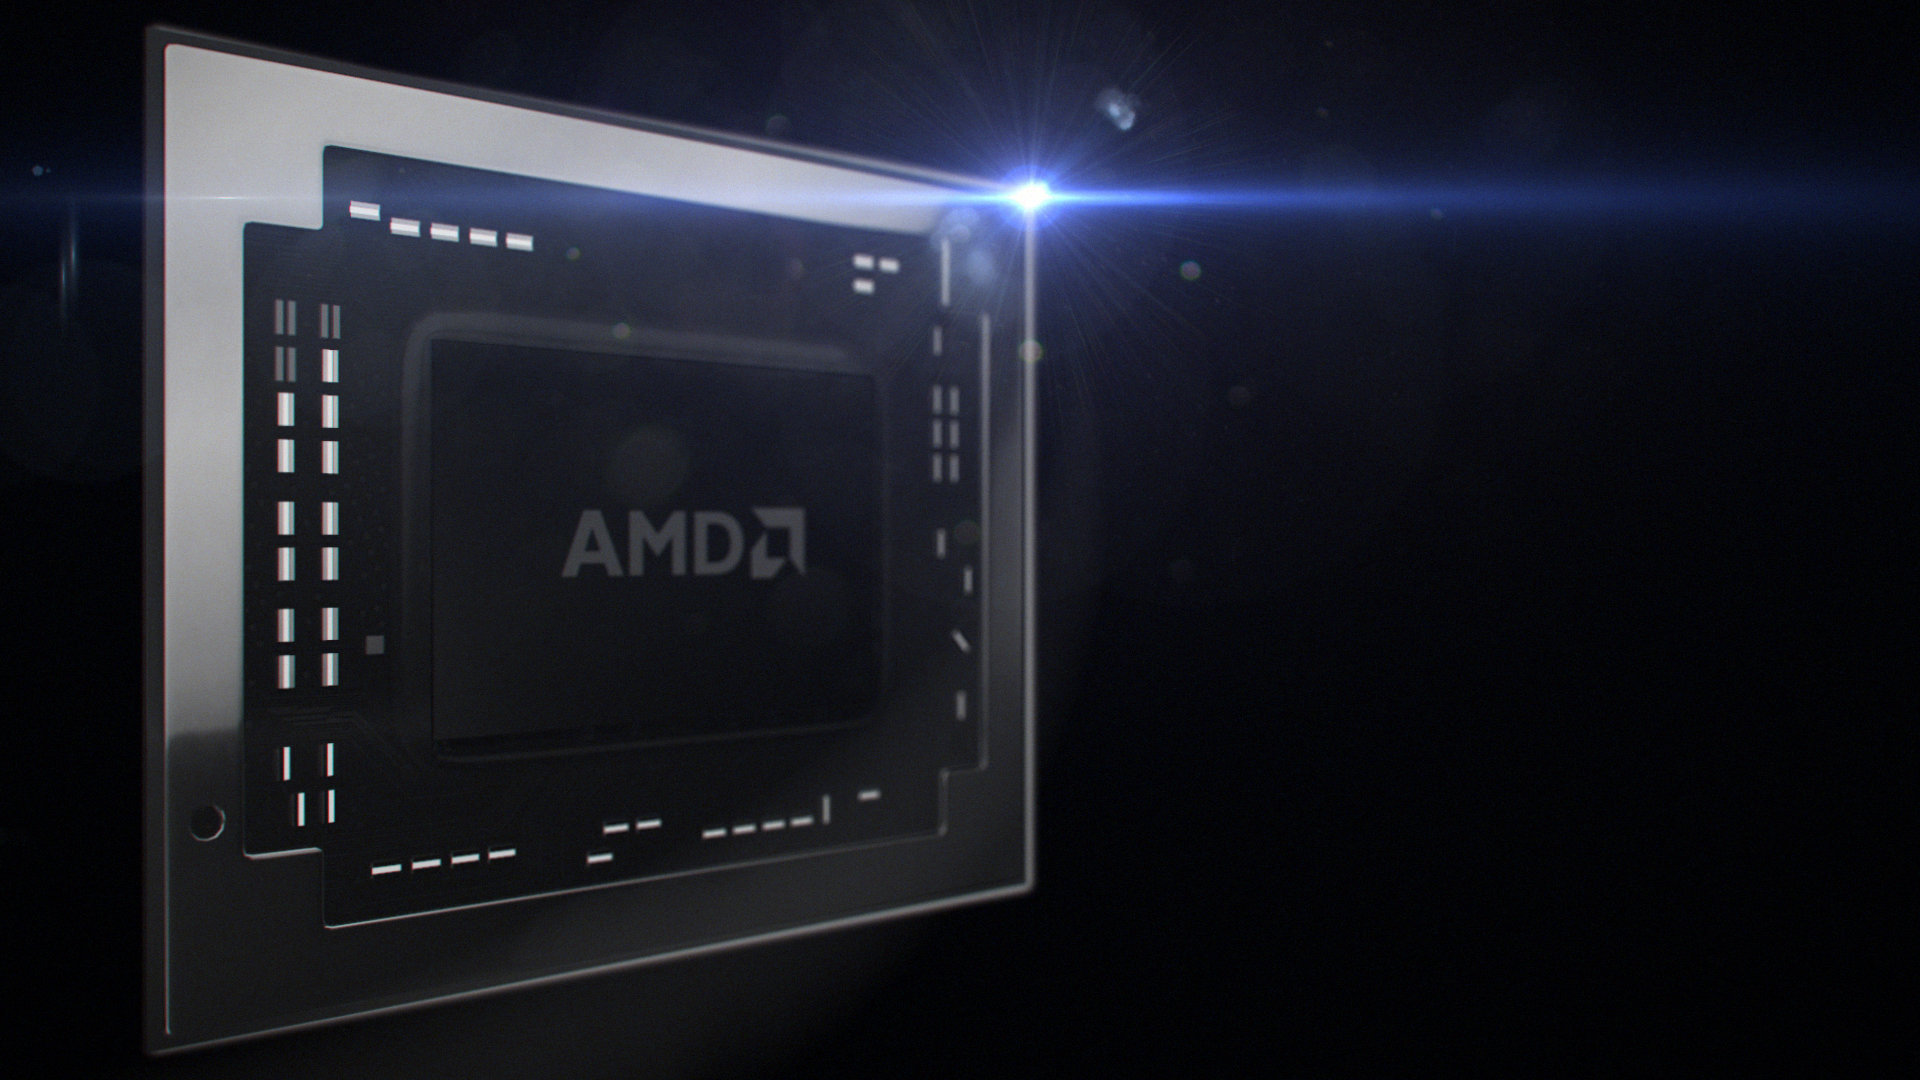 AMD Bristol Ridge APU